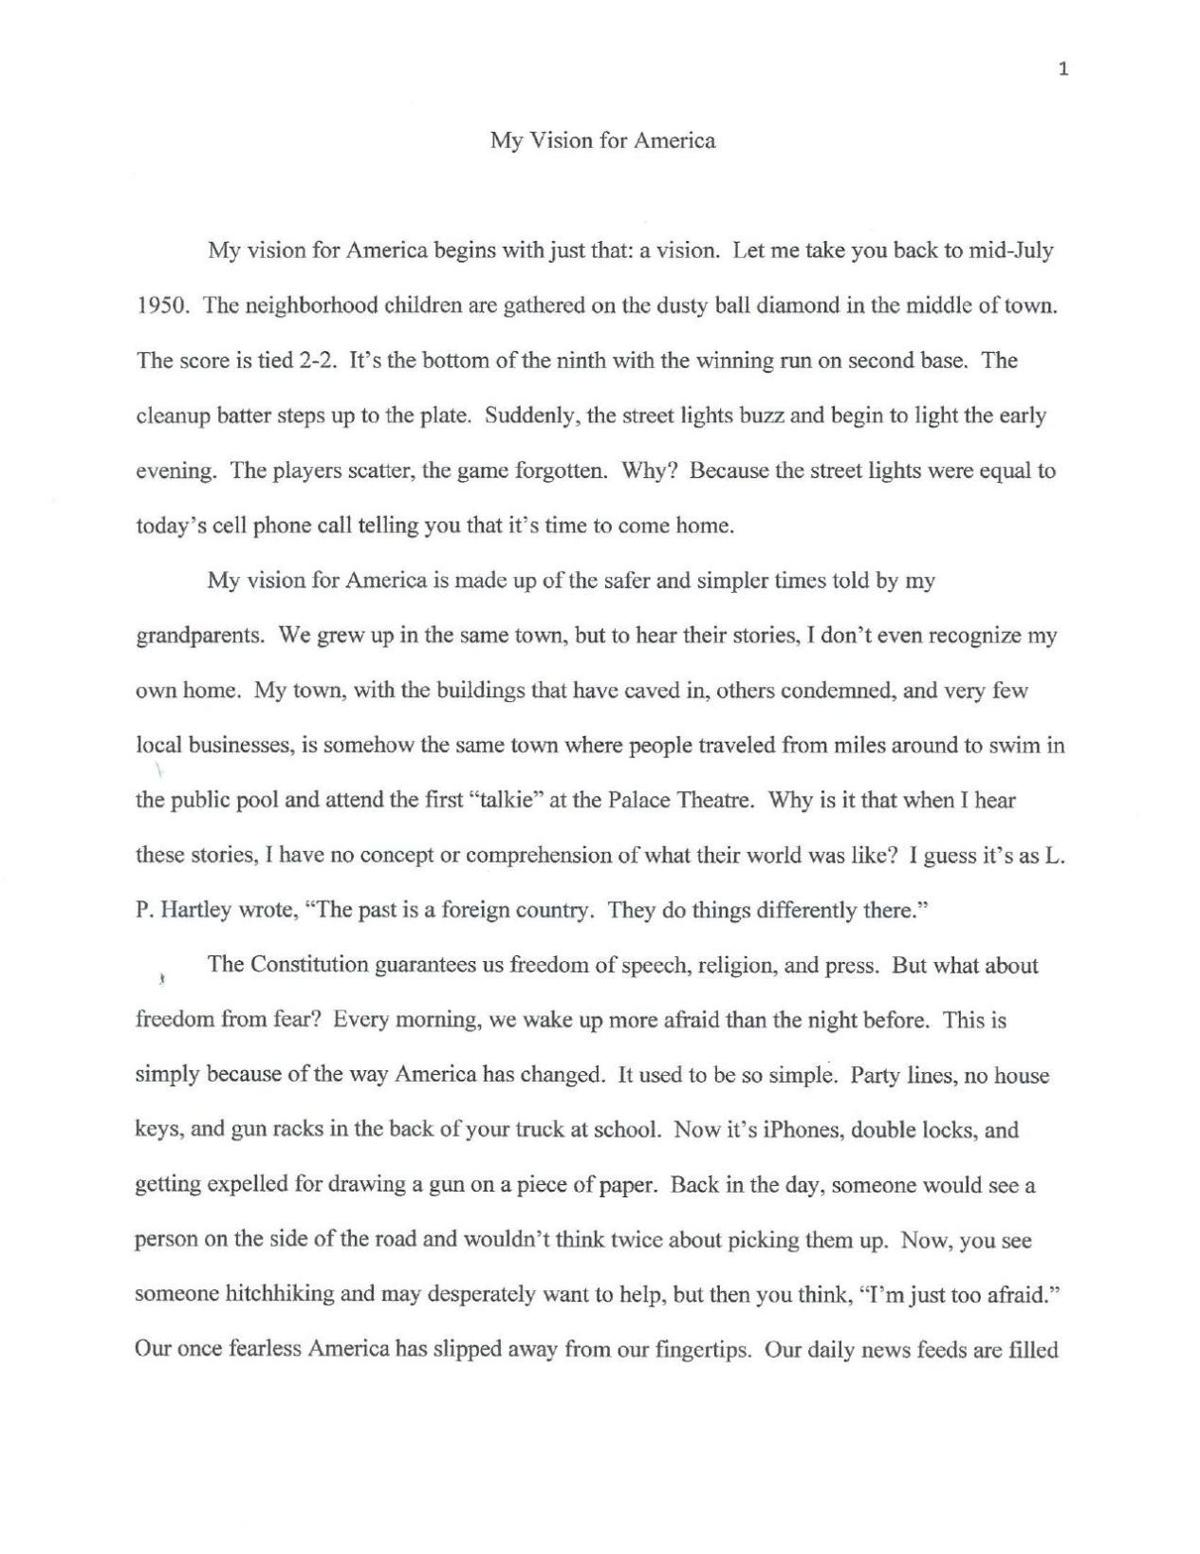 two voices essay Giving all the characters in a story a similar voice is usually unrealistic and uncanny some writers have problems with giving their characters distinct voices by keeping several factors in mind, character voices can be diversified  another possibility would be directly comparing two quotes (or two snippets of conversation) where the.